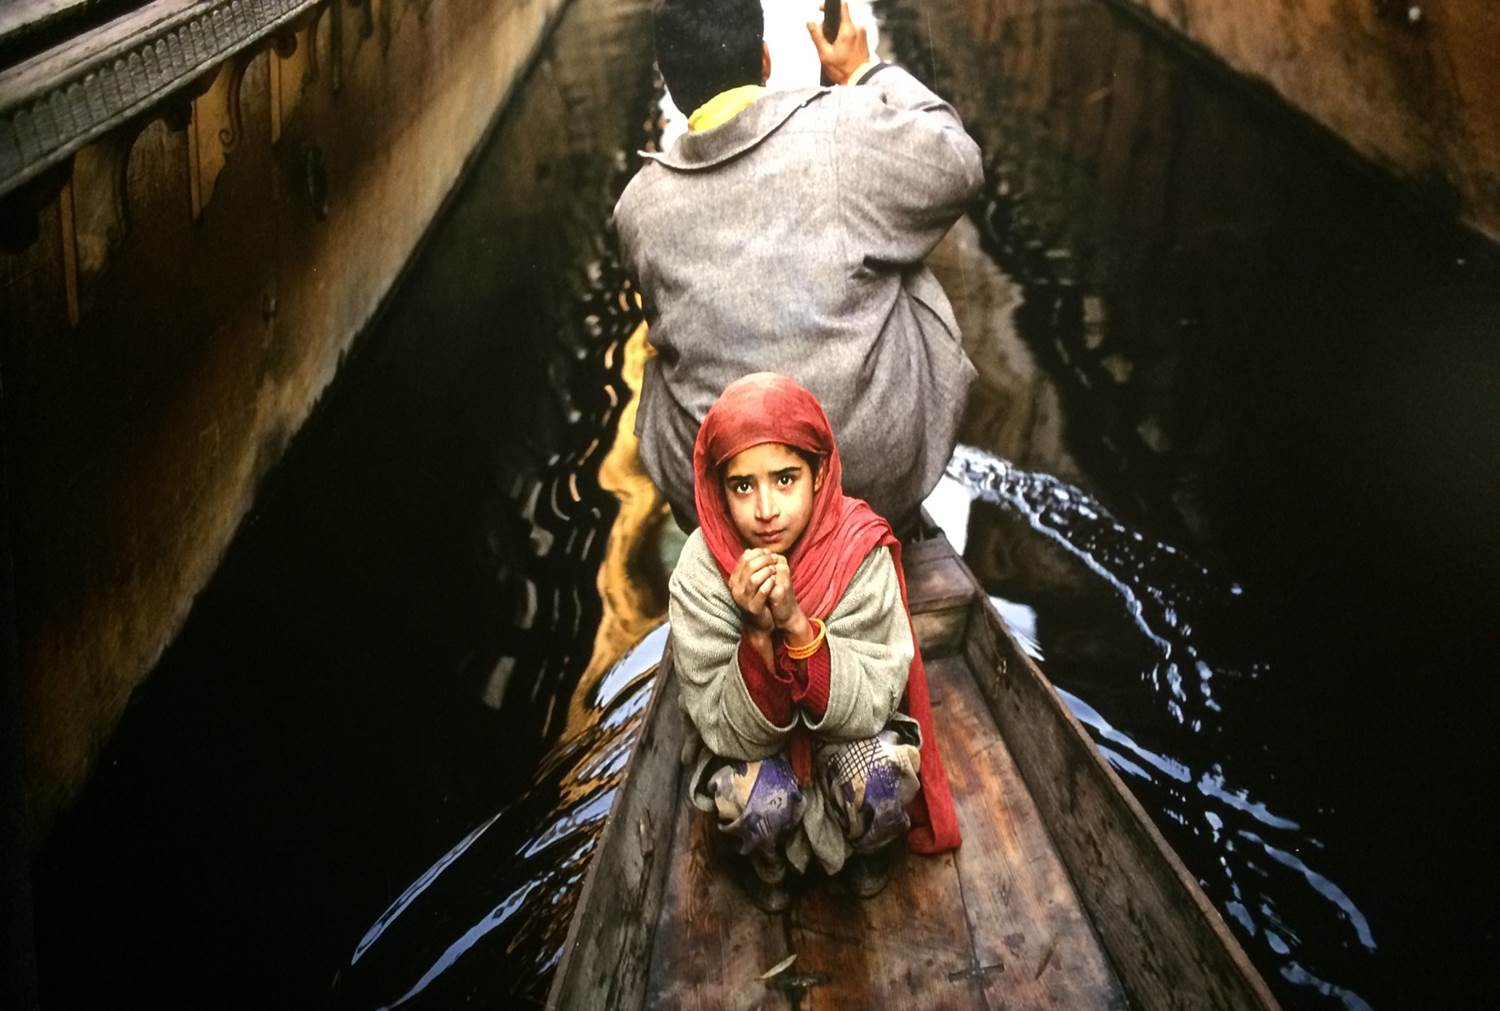 LE MONDE DE STEVE MC CURRY